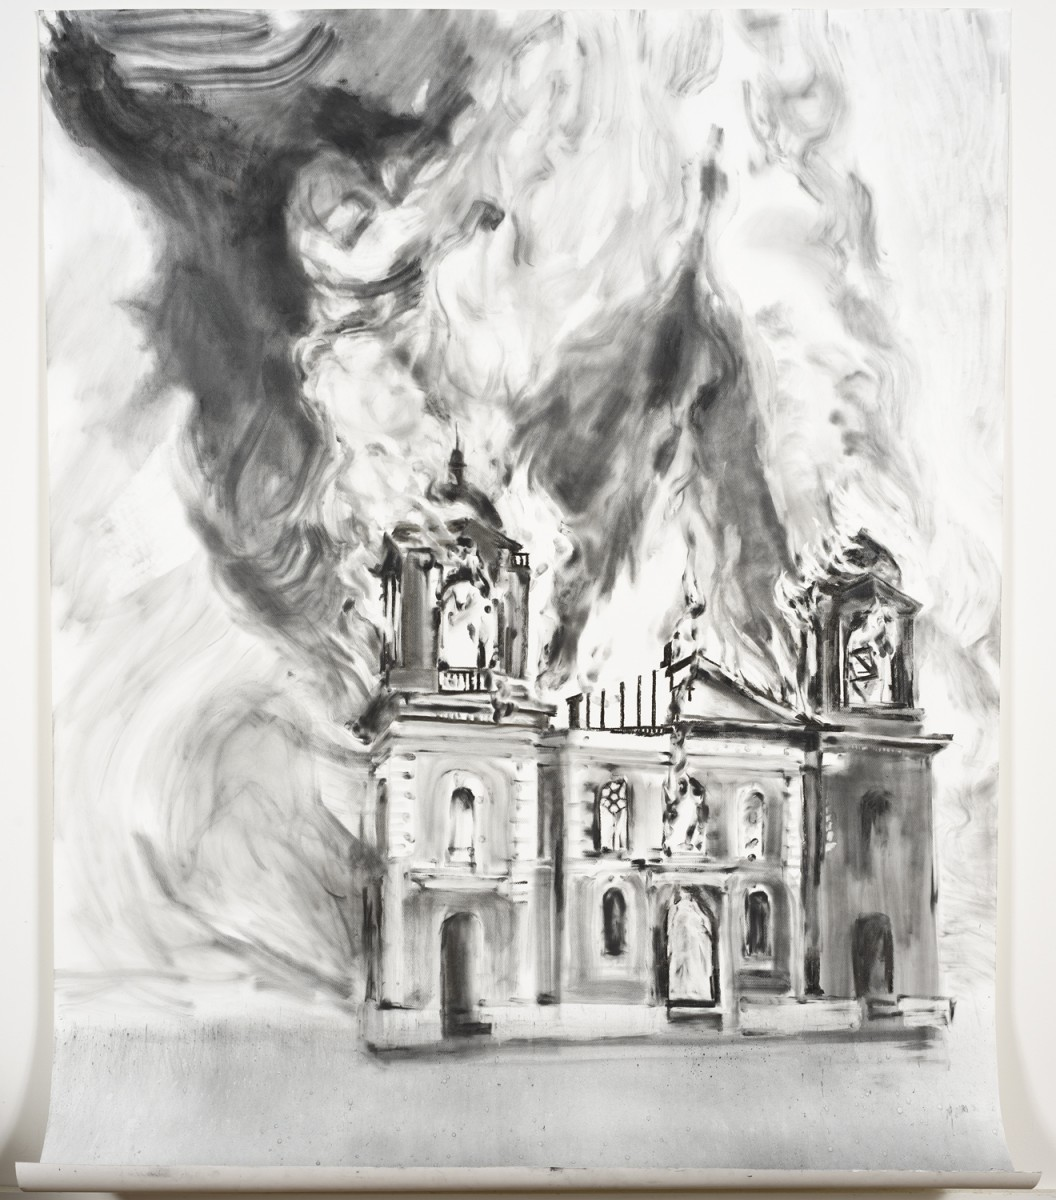 Mission Santa Clara Burning